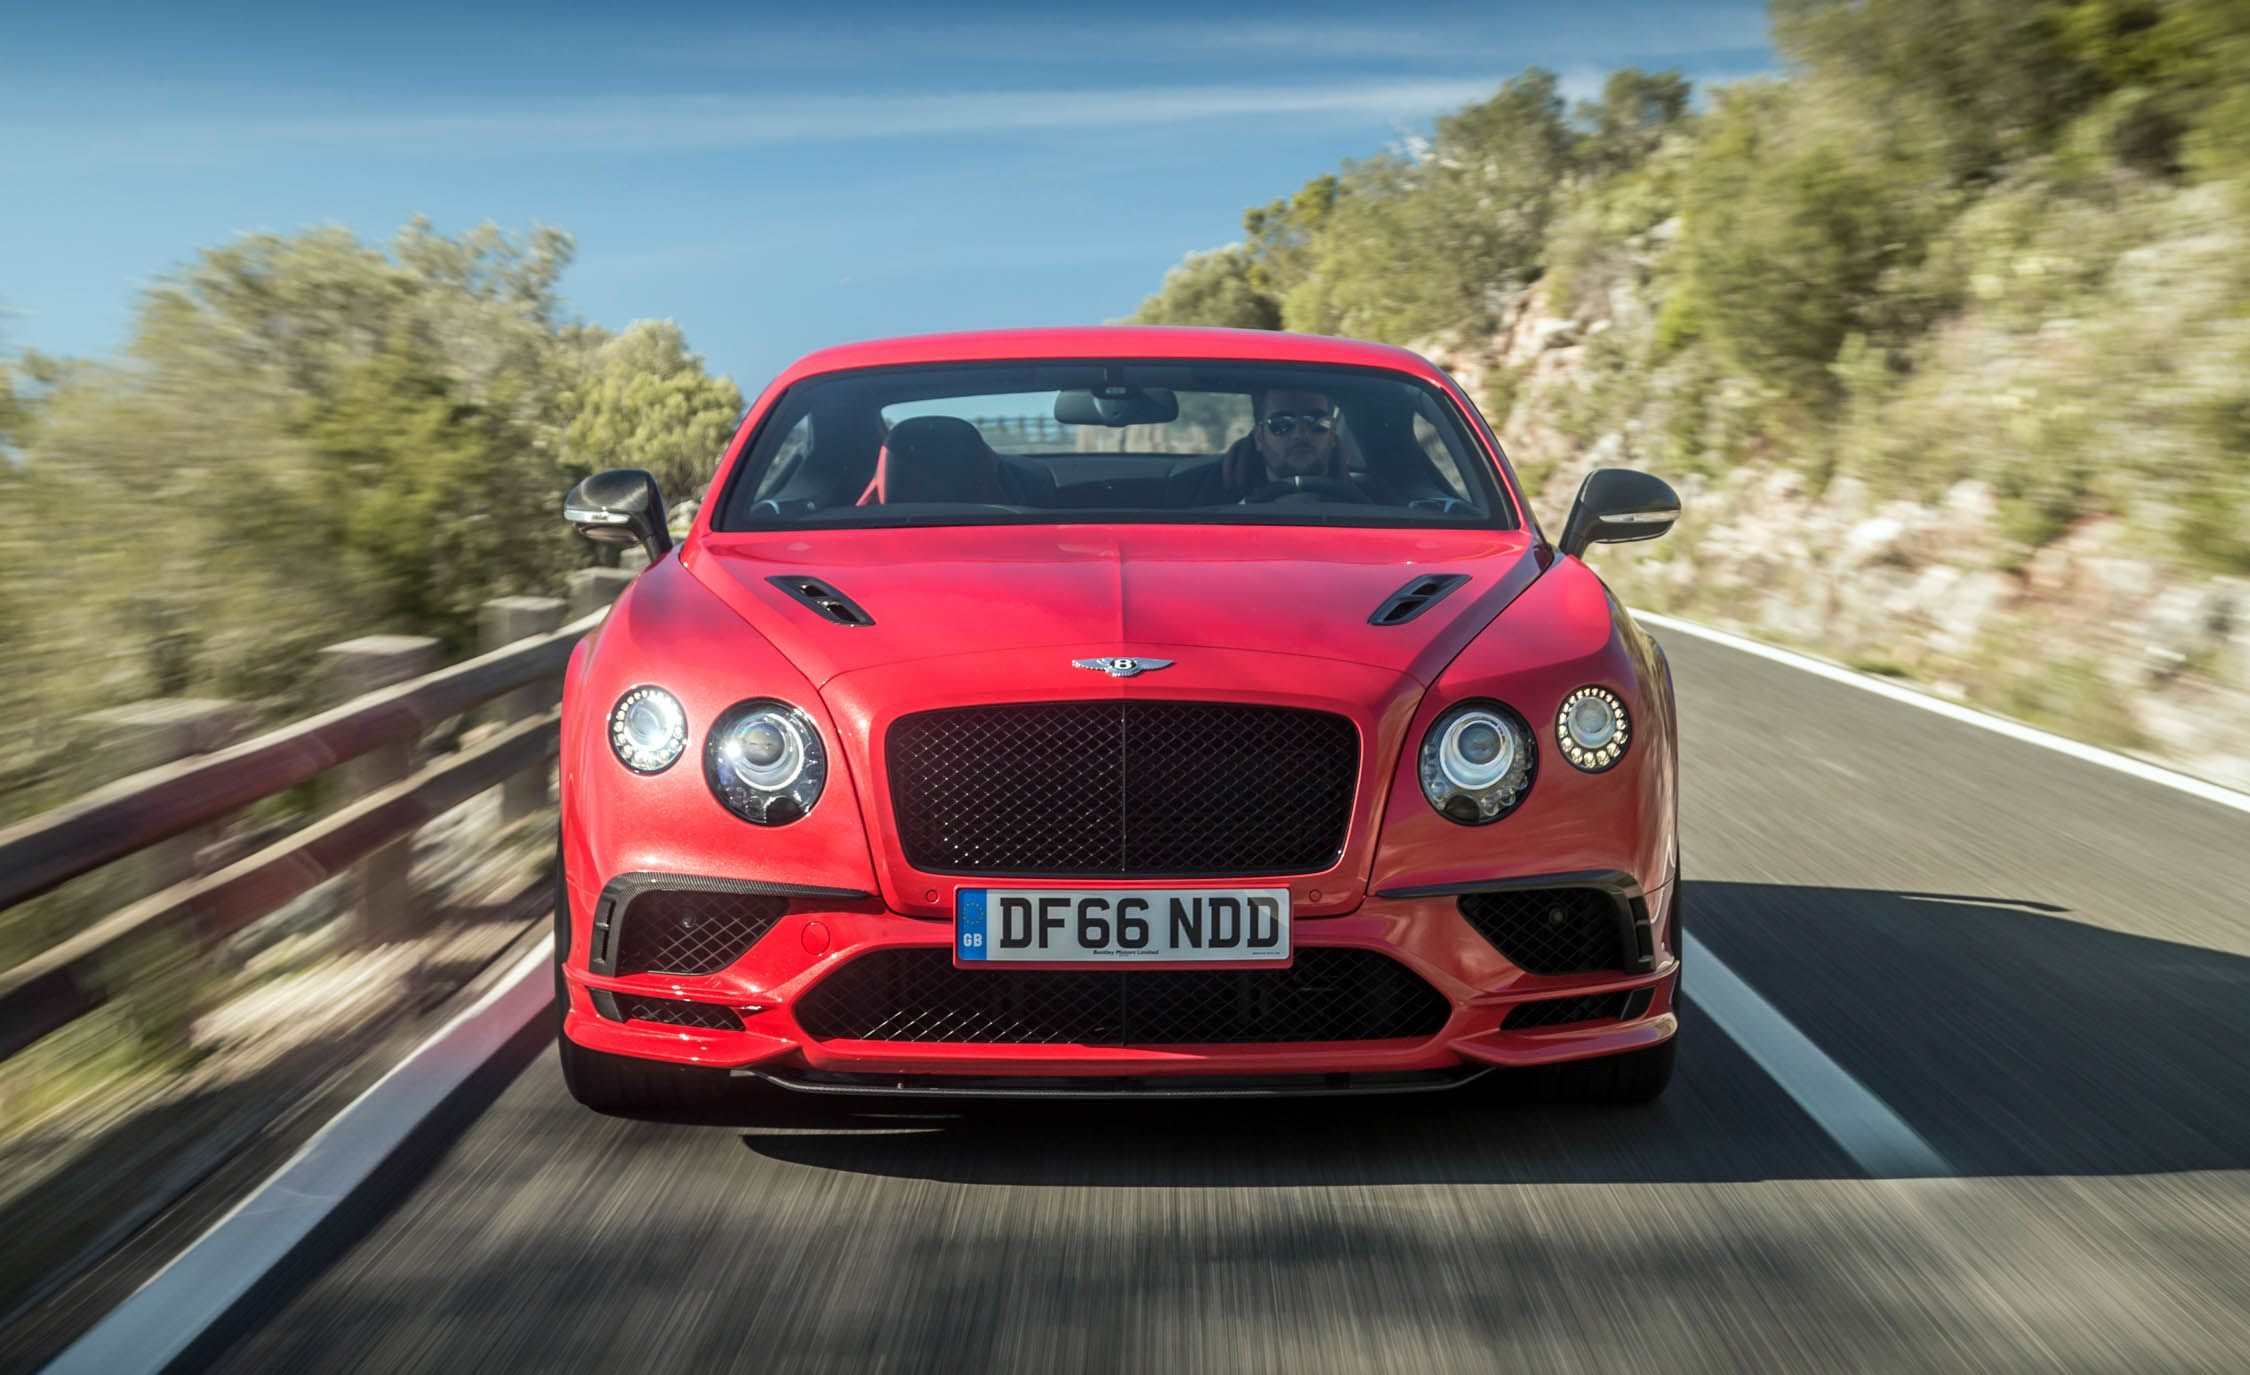 supersports automobile first bentley for drive show continental michigan in rear more sale three review news quarter motion